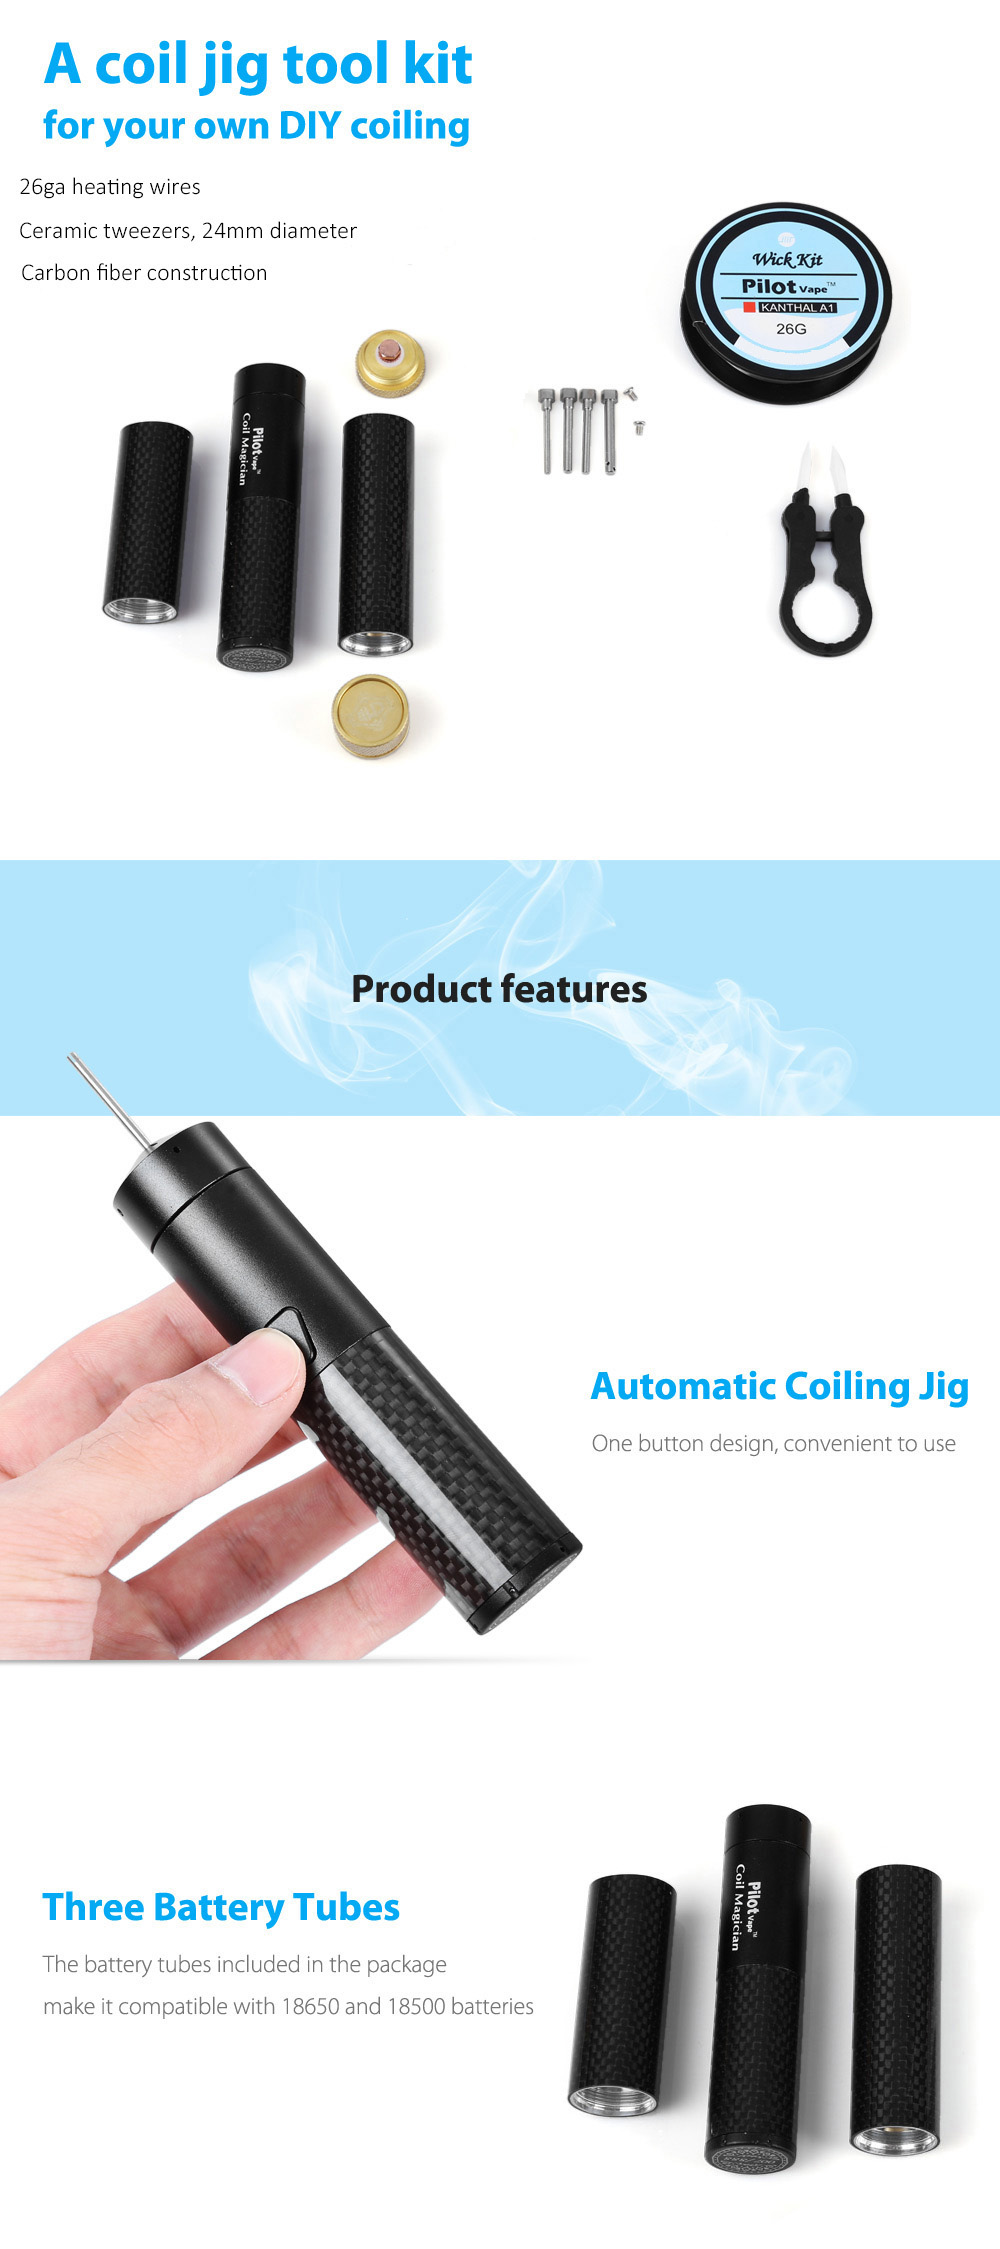 Original Pilot Vape Coil Magician DIY Tool Kit with Automatic Coil Jig / 18650 / 18500 Battery Tube / Heating Wire / Mechanical Mod Available for E Cigarette